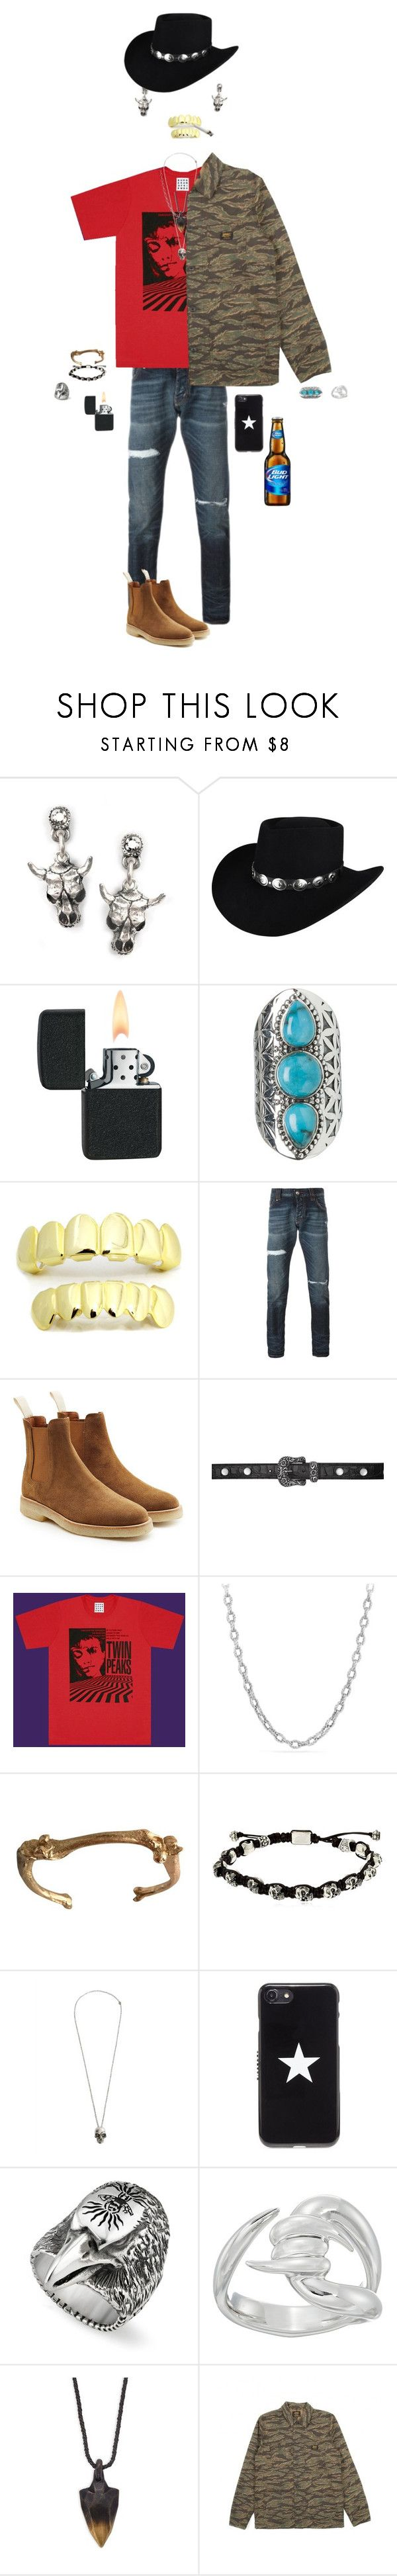 """""""Post Malone"""" by kevin-whitcanack on Polyvore featuring Sweet Romance, Bailey Western, Tribe, Philipp Plein, Common Projects, MM6 Maison Margiela, David Yurman, Cantini MC Firenze, Alexander McQueen and Givenchy"""